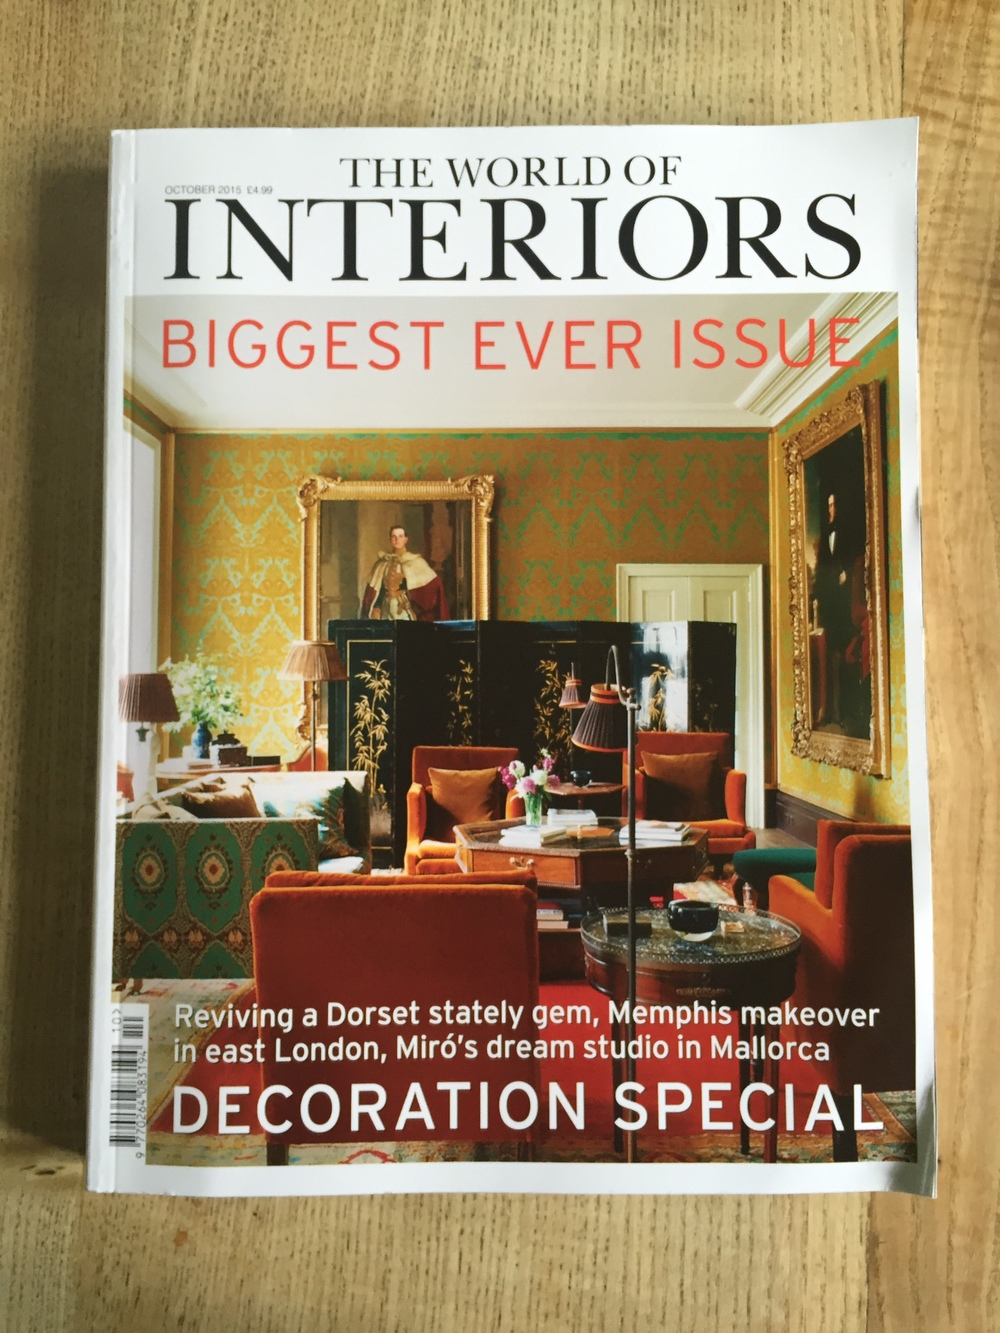 Our wallpaper has made it to the front cover of World of Interiors ...